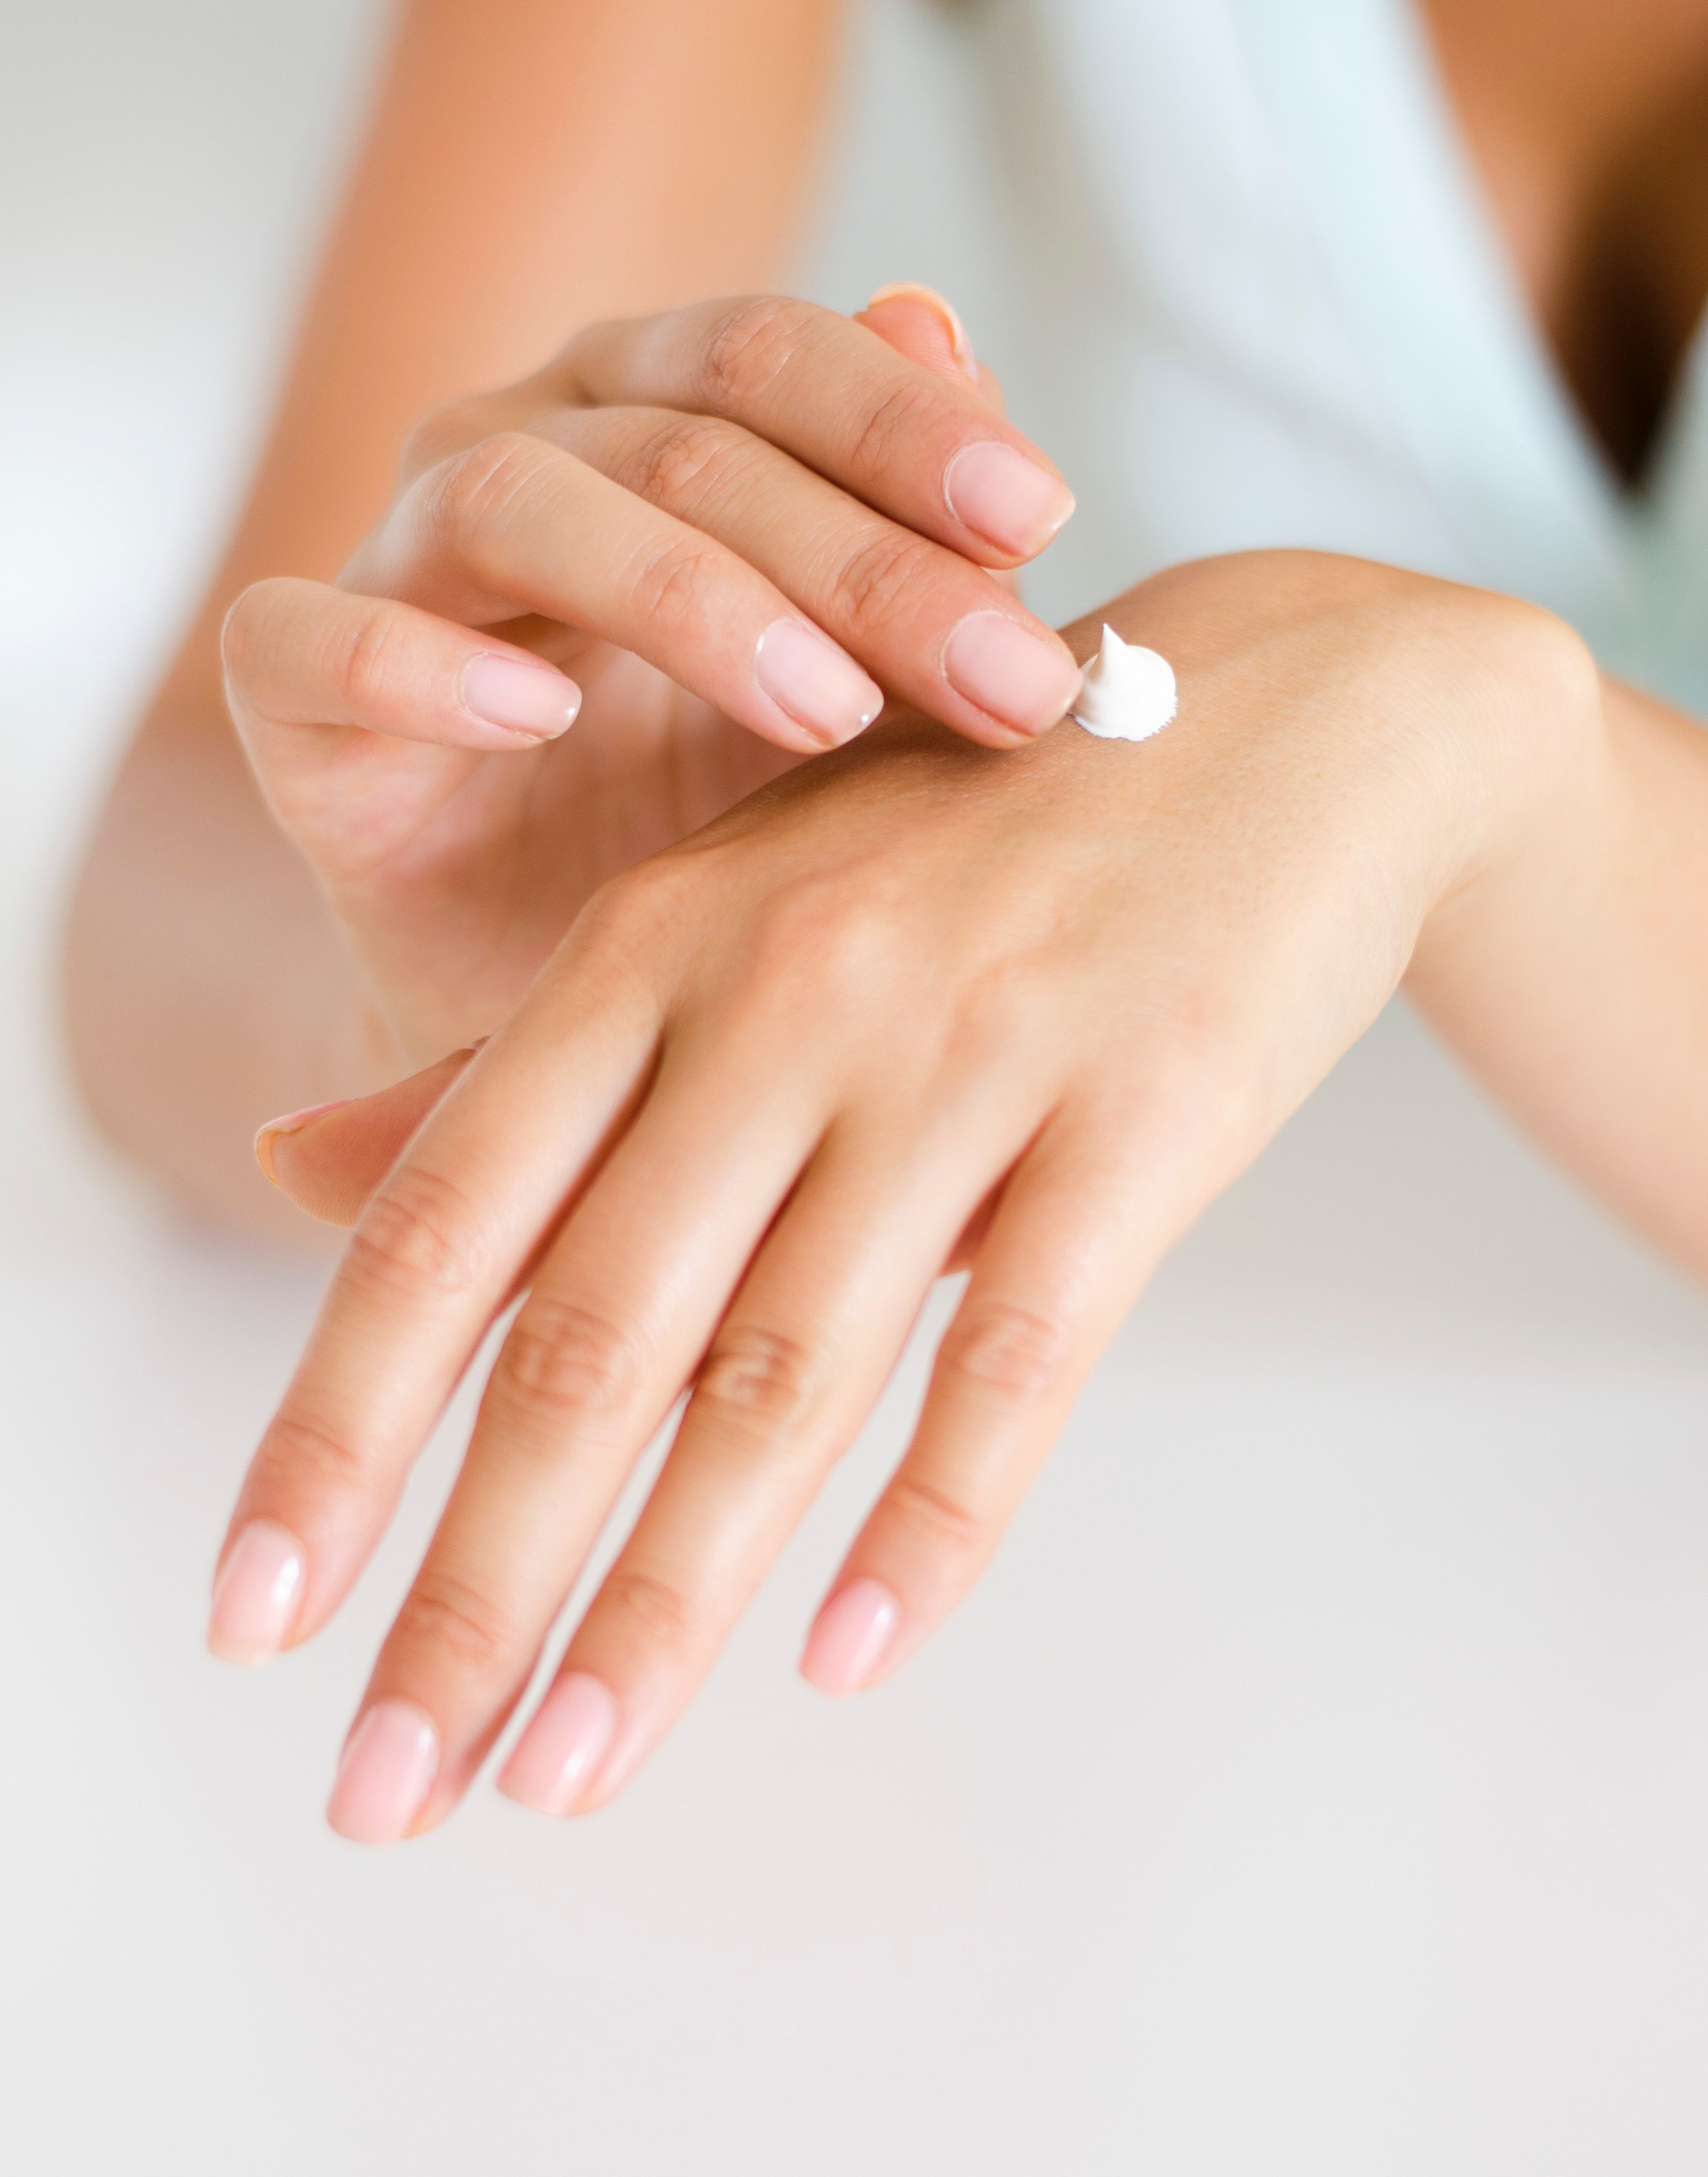 A woman applies lotion to her hands